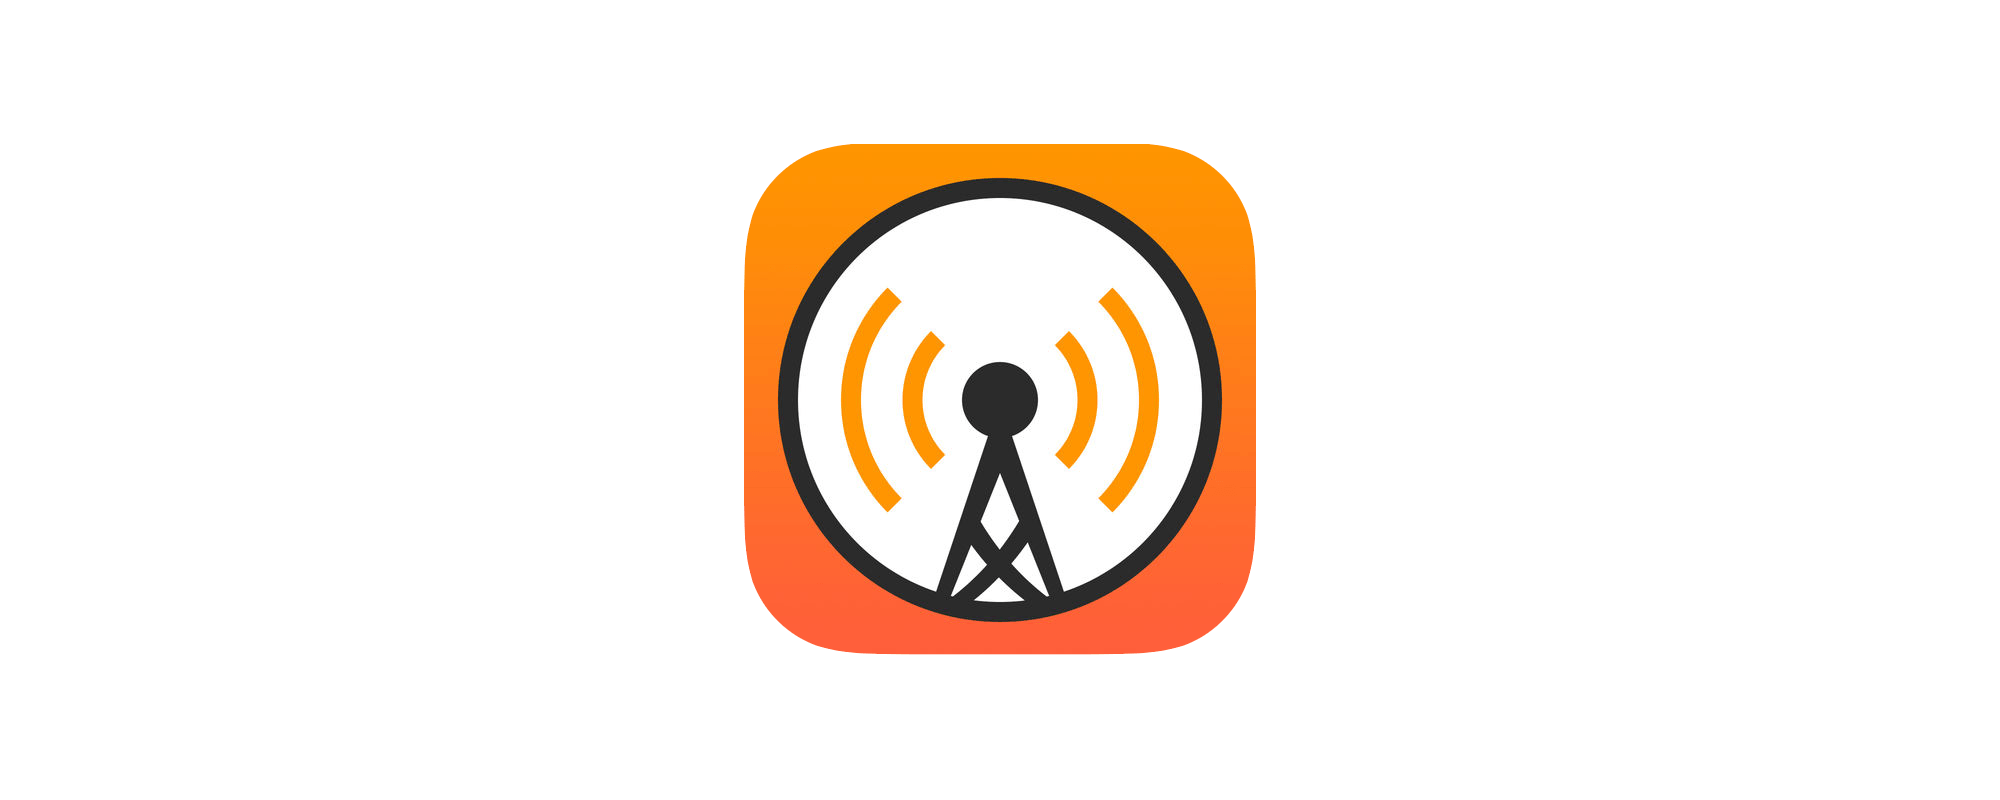 Overcast 2.5 Is Out With New Features | Infinite Diaries